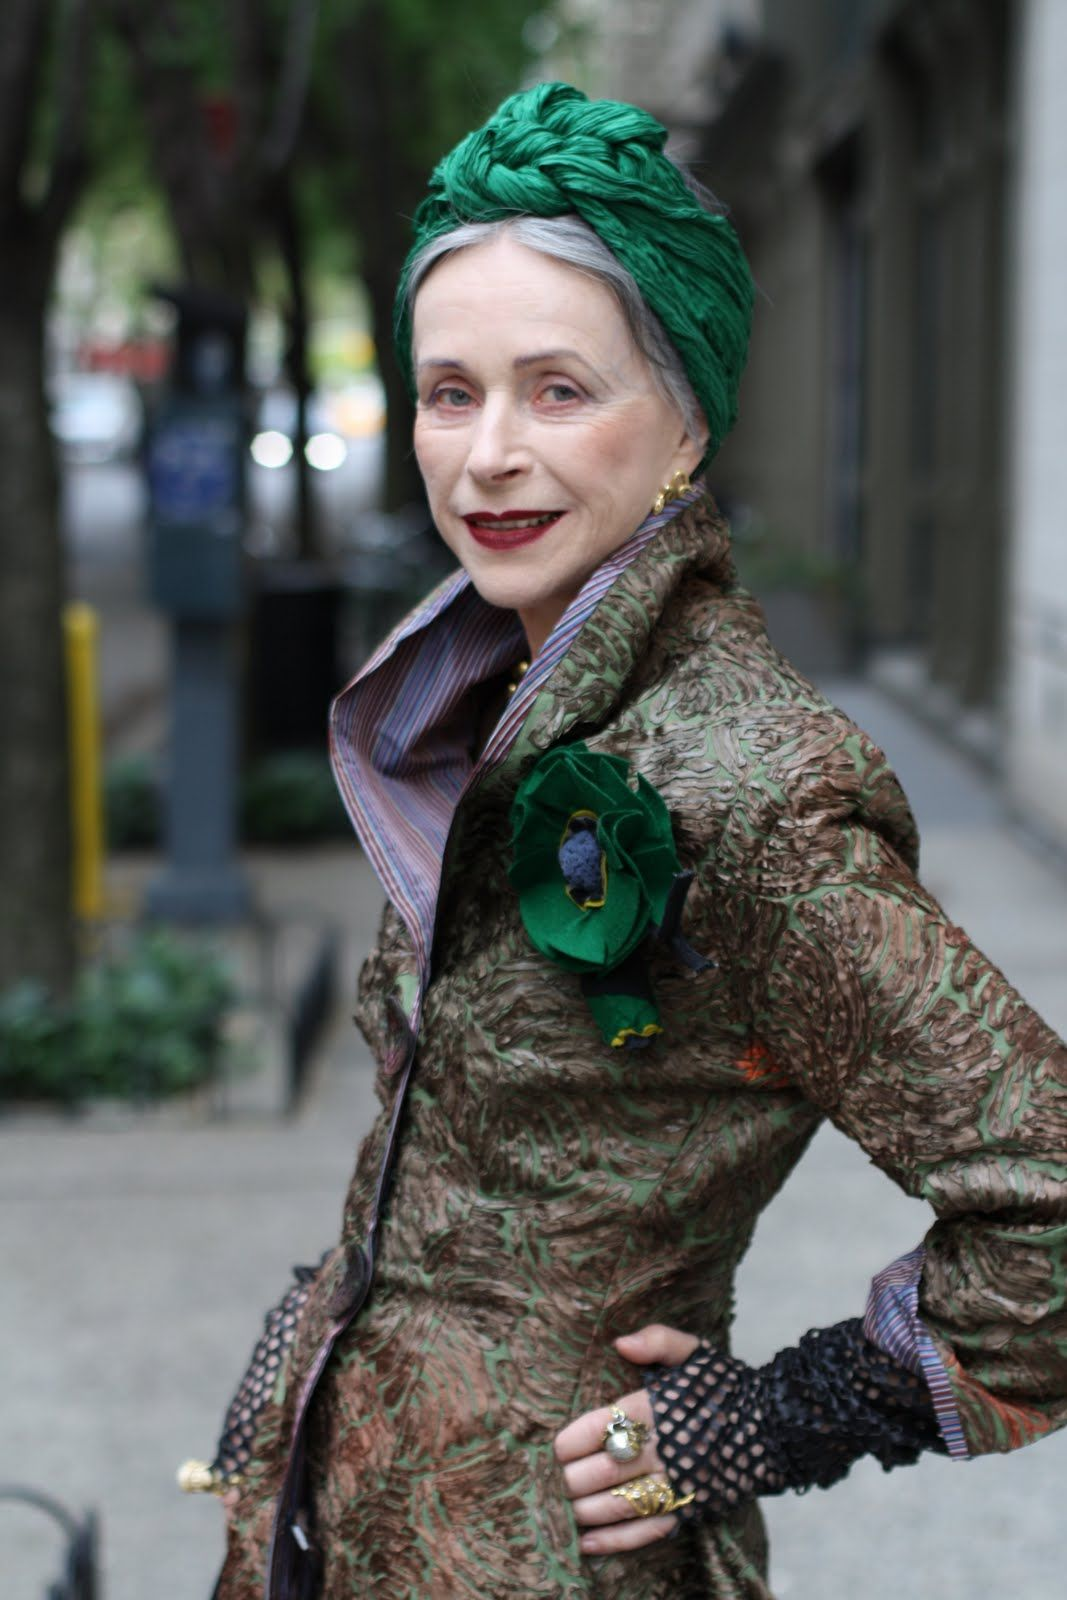 Senior style: Glamorous older women - The Look my-style